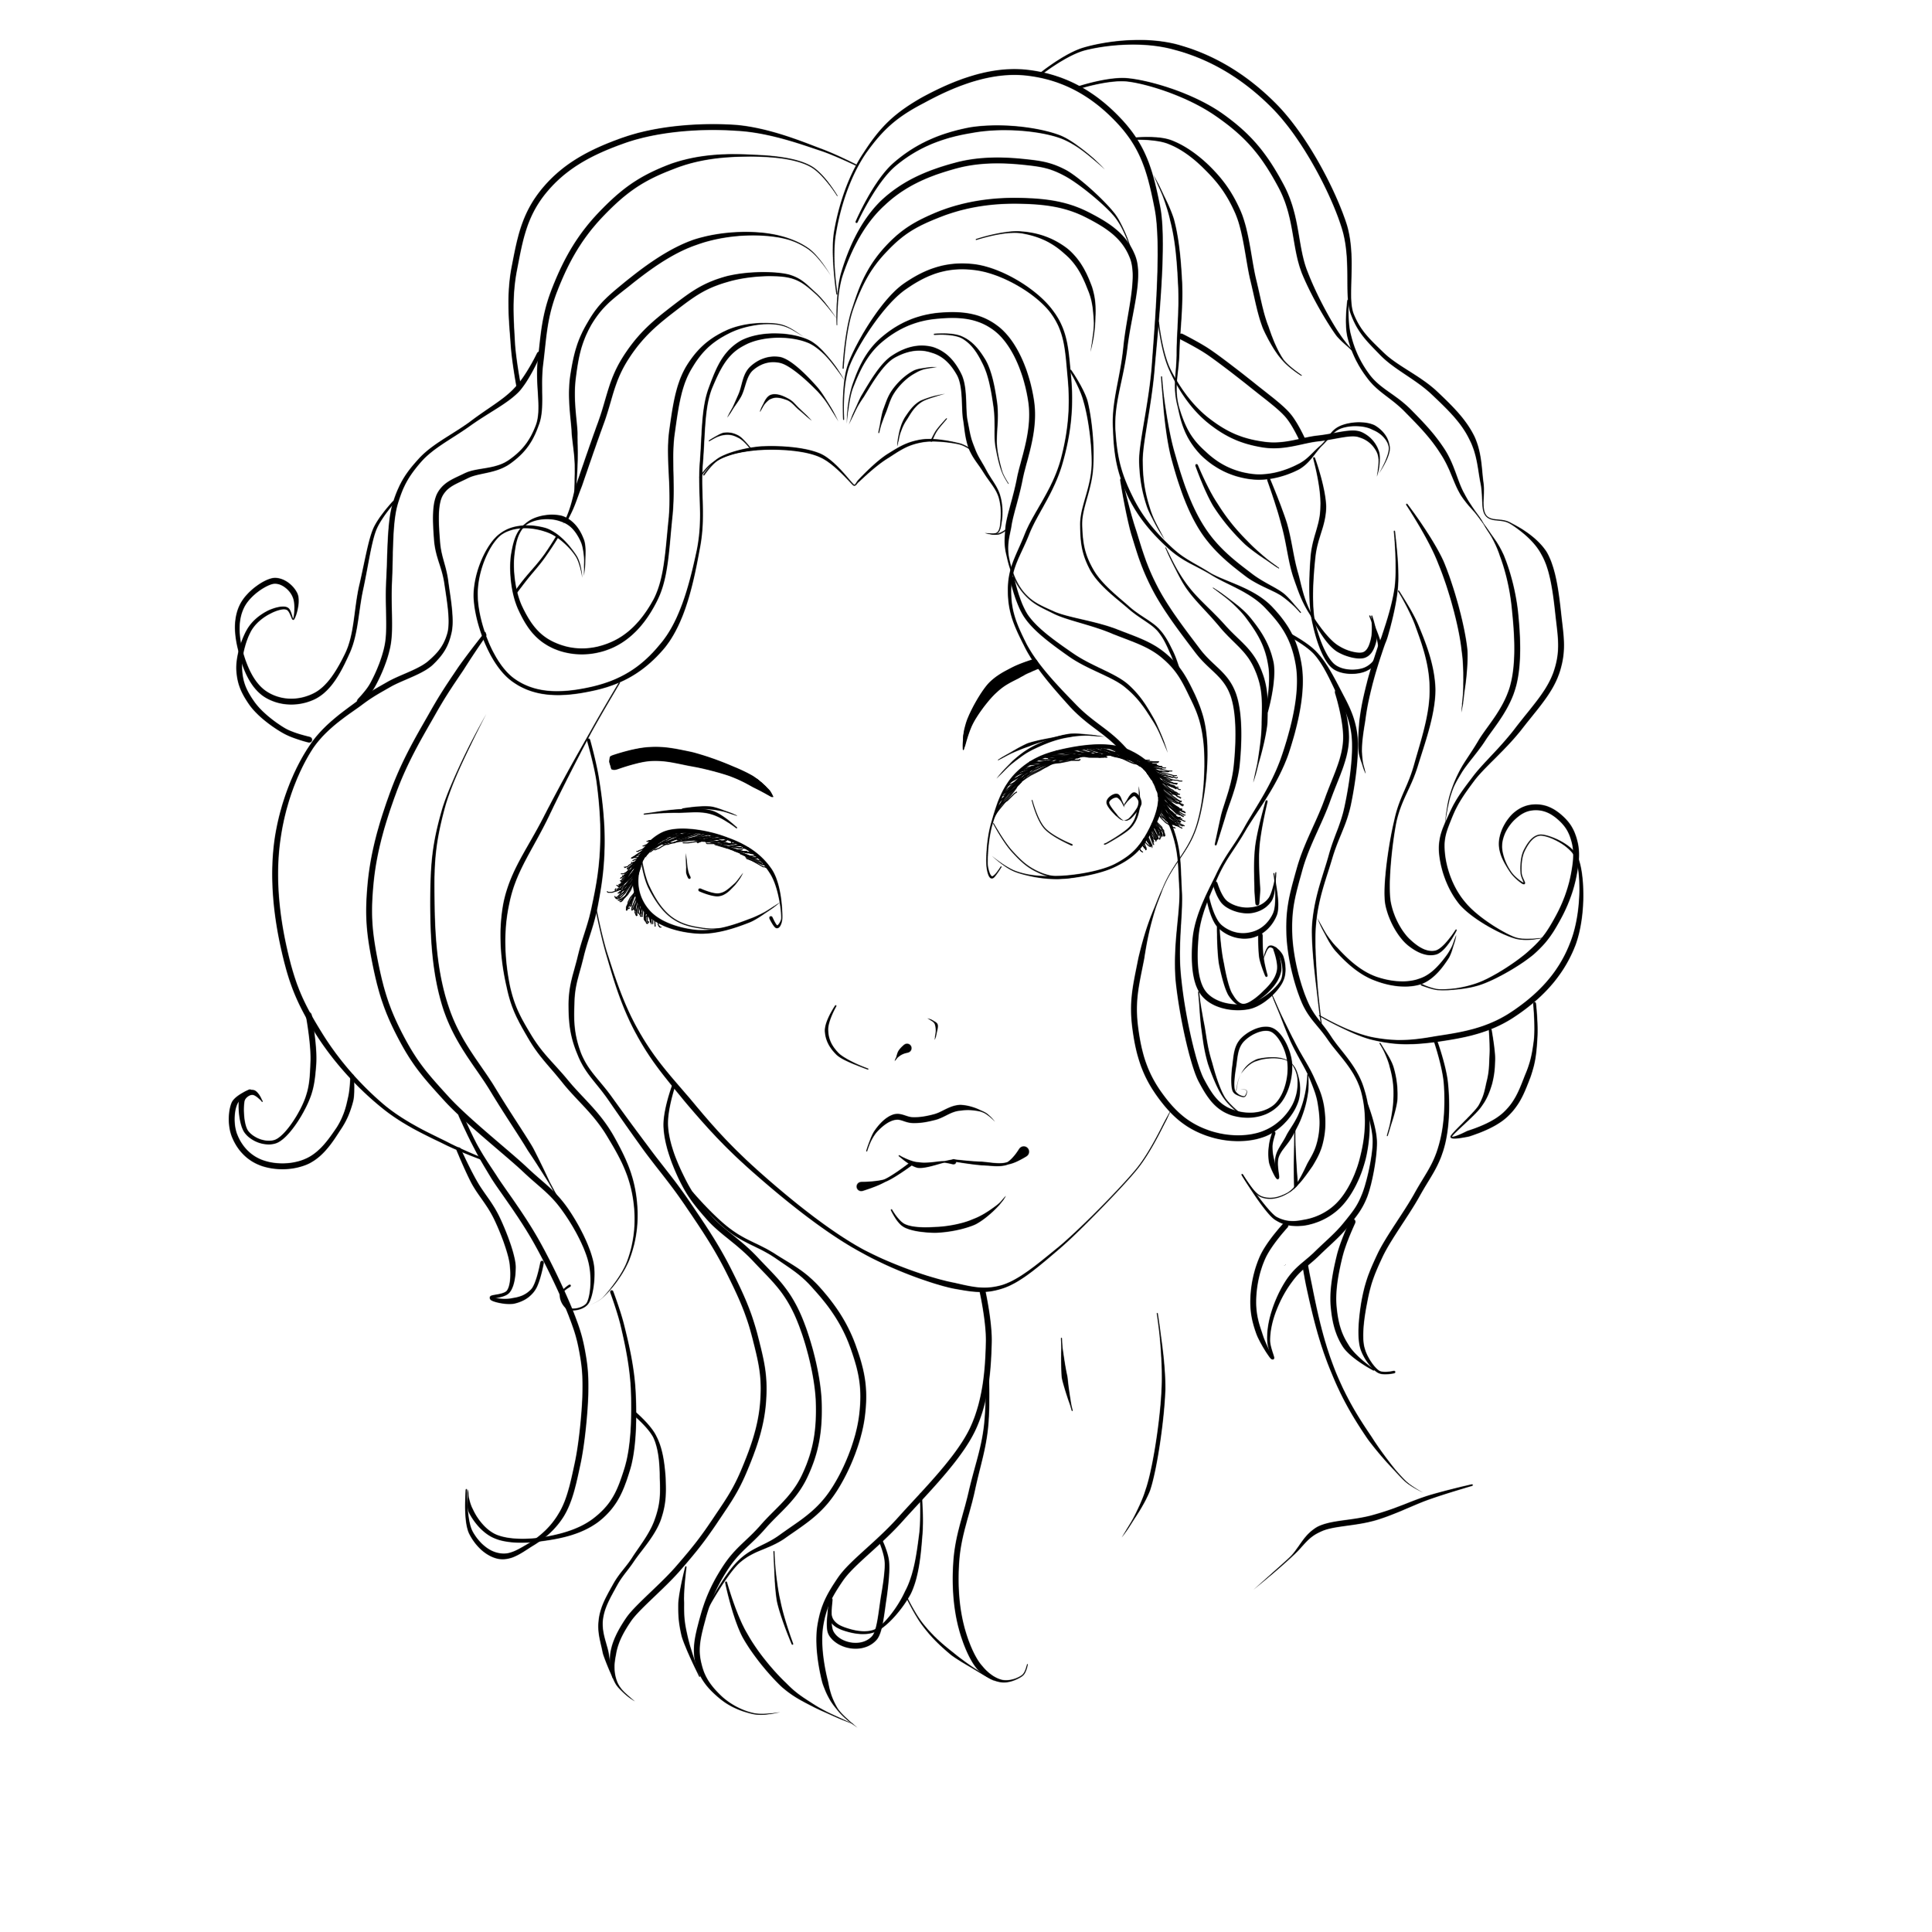 Chibi Girl With Curly Hair Template | www.imgkid.com - The ...